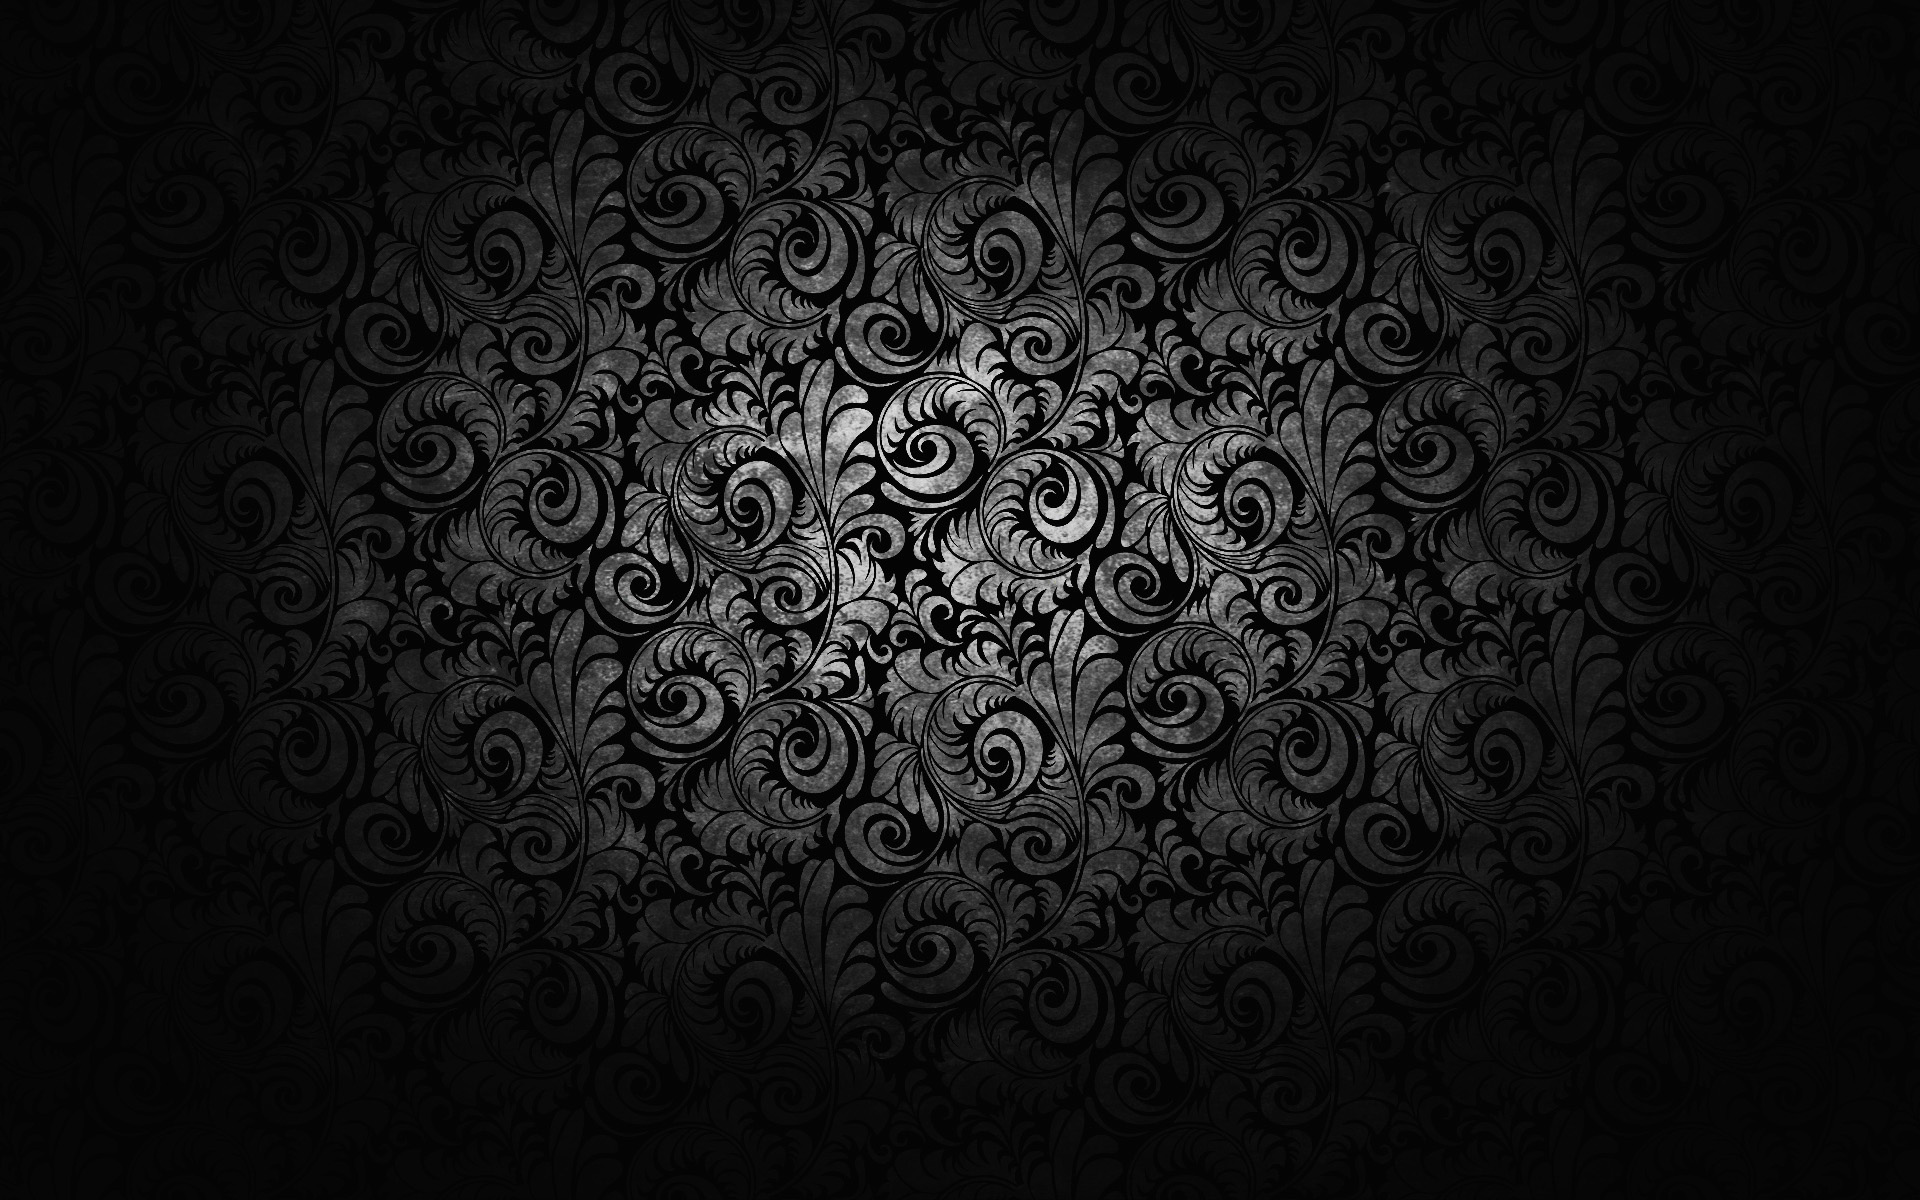 Awesome black and white flower wallpapers composition ball gown black wallpaper with white flowers wallpapersafari mightylinksfo